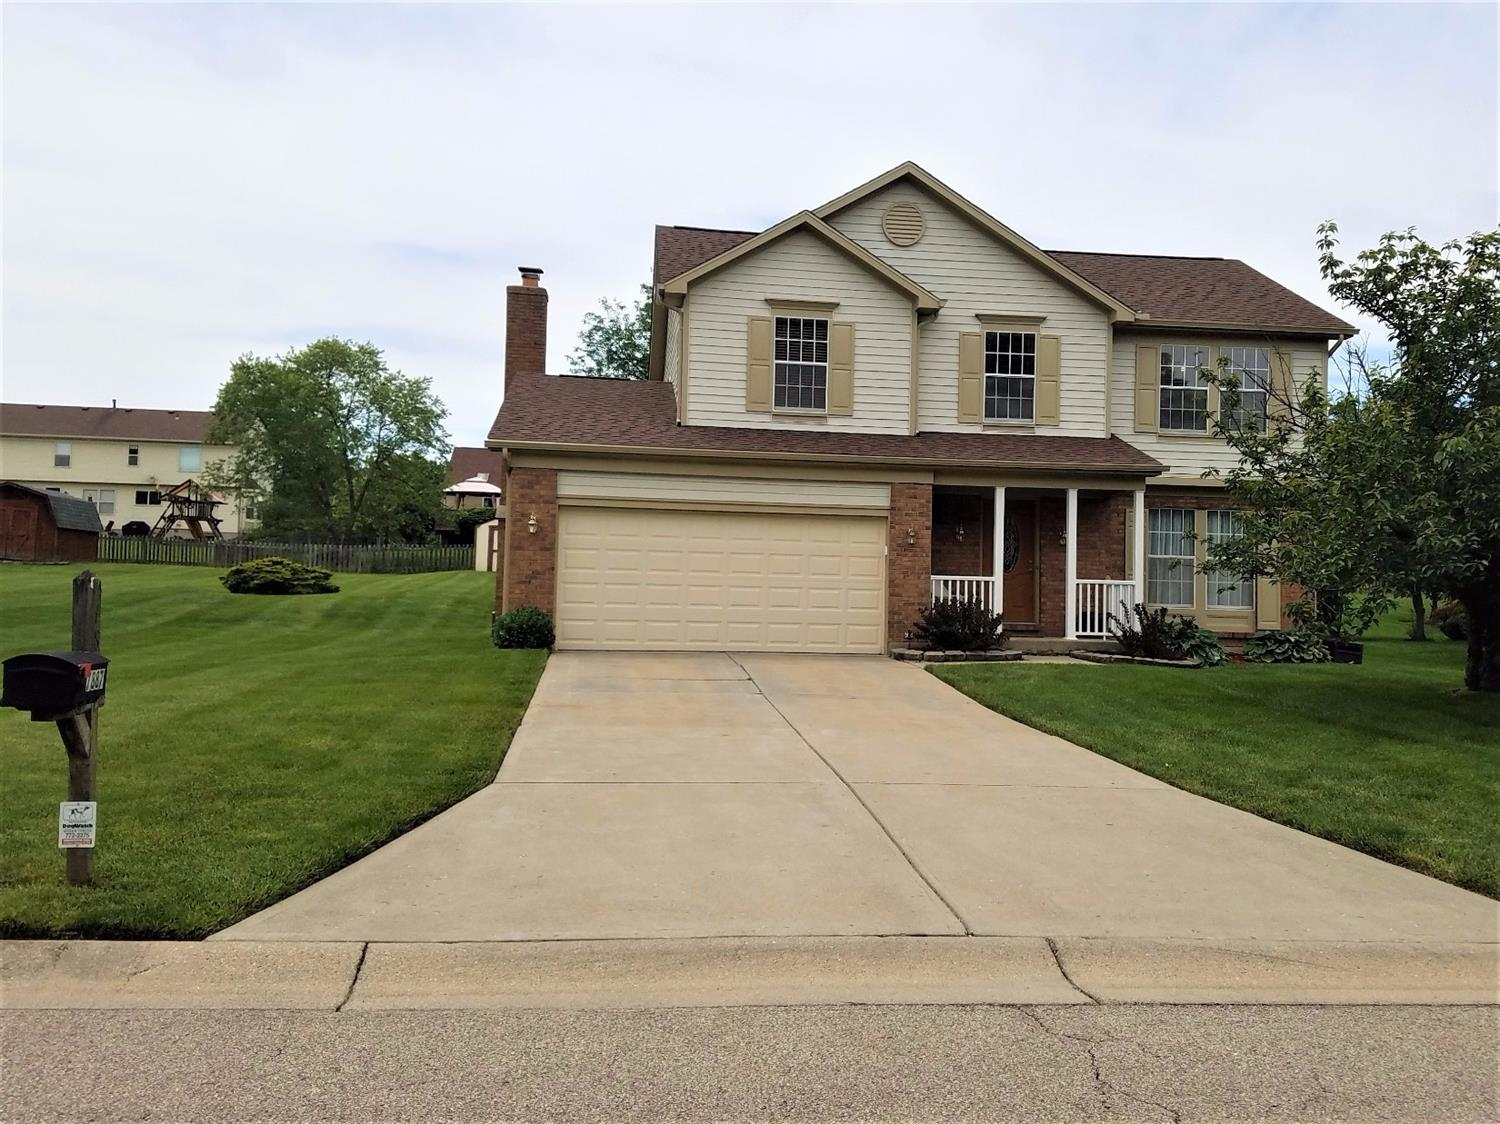 7887 Dorsetshire Drive, West Chester, OH 45069